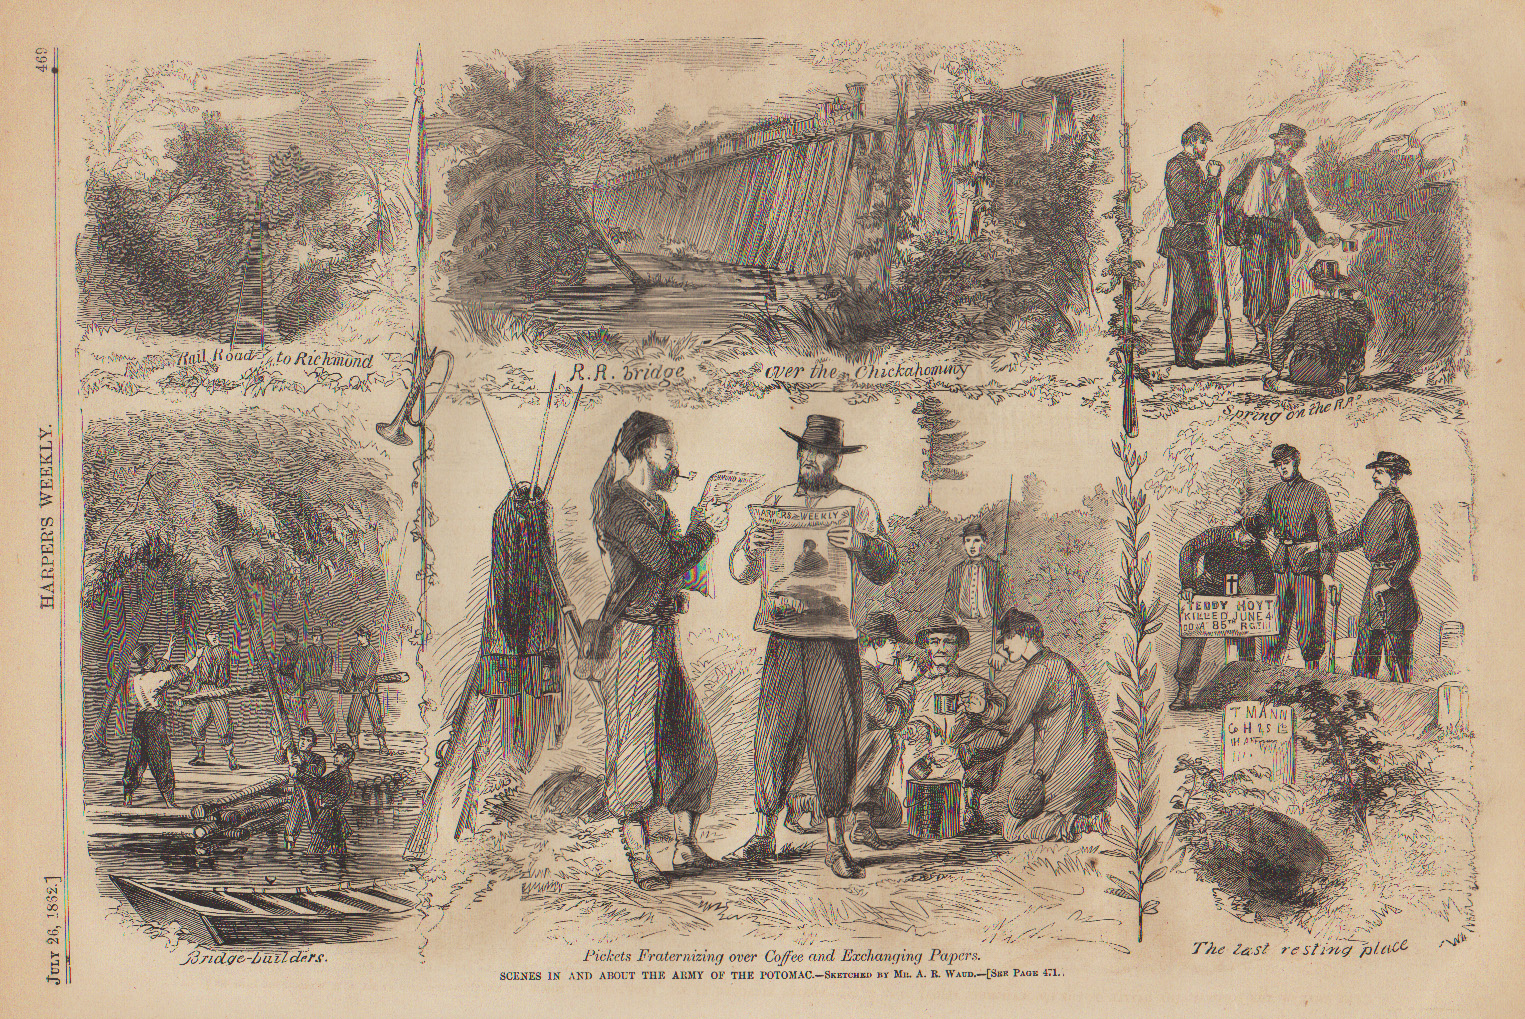 Chickahominy RR bridge, Waud, 1862, Harpers Weekly